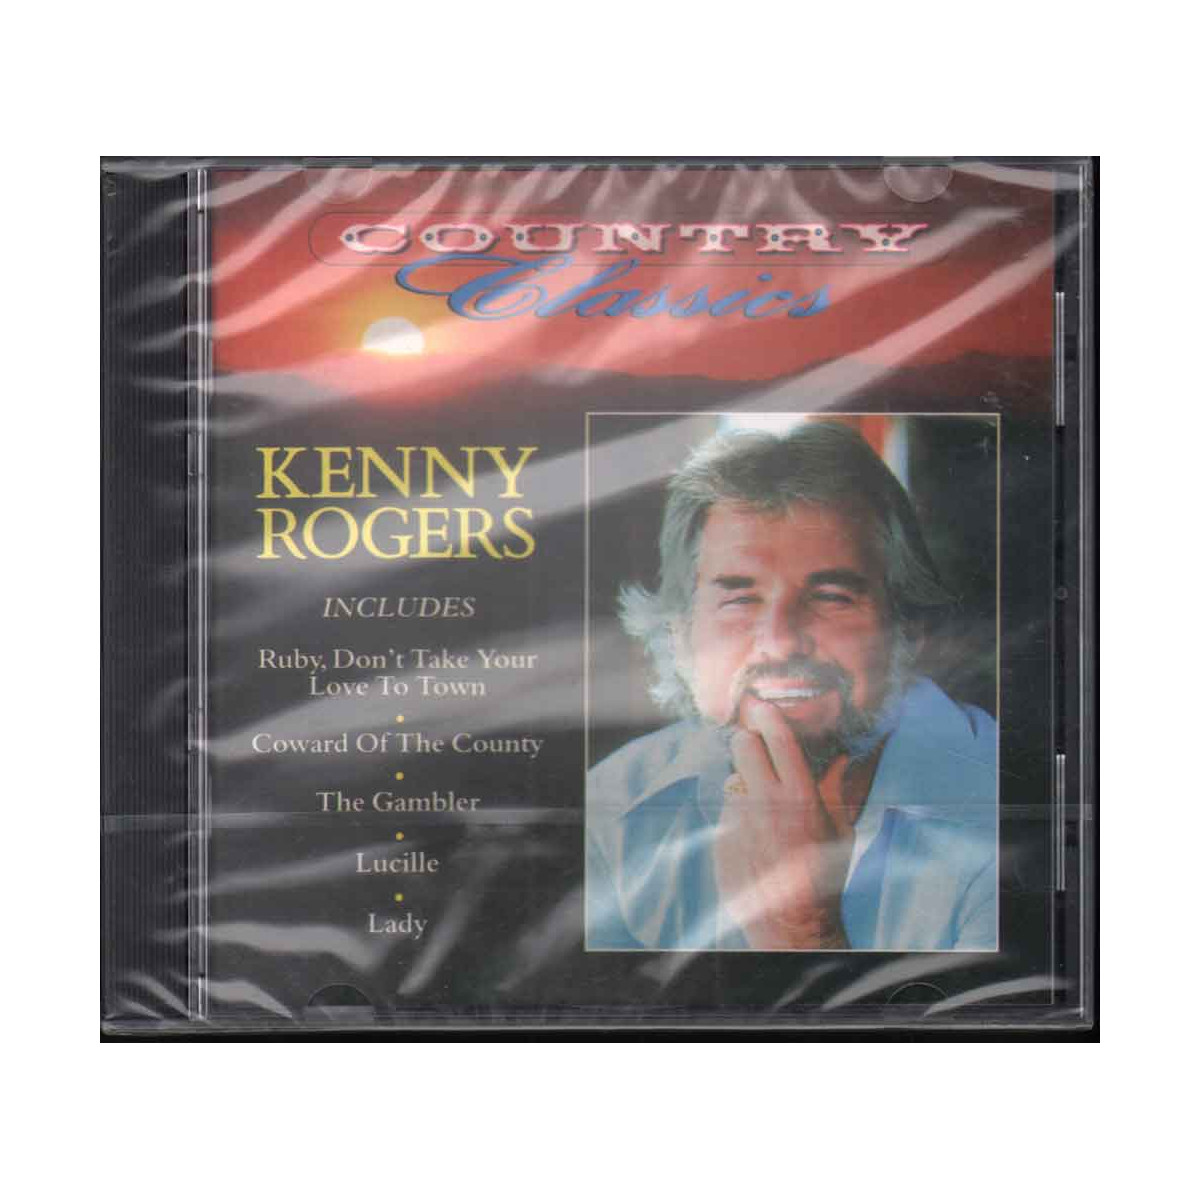 marketing ps mix kenny rogers Find meetups so you can do more of what matters to you or create your own group and meet people near you who share your interests.